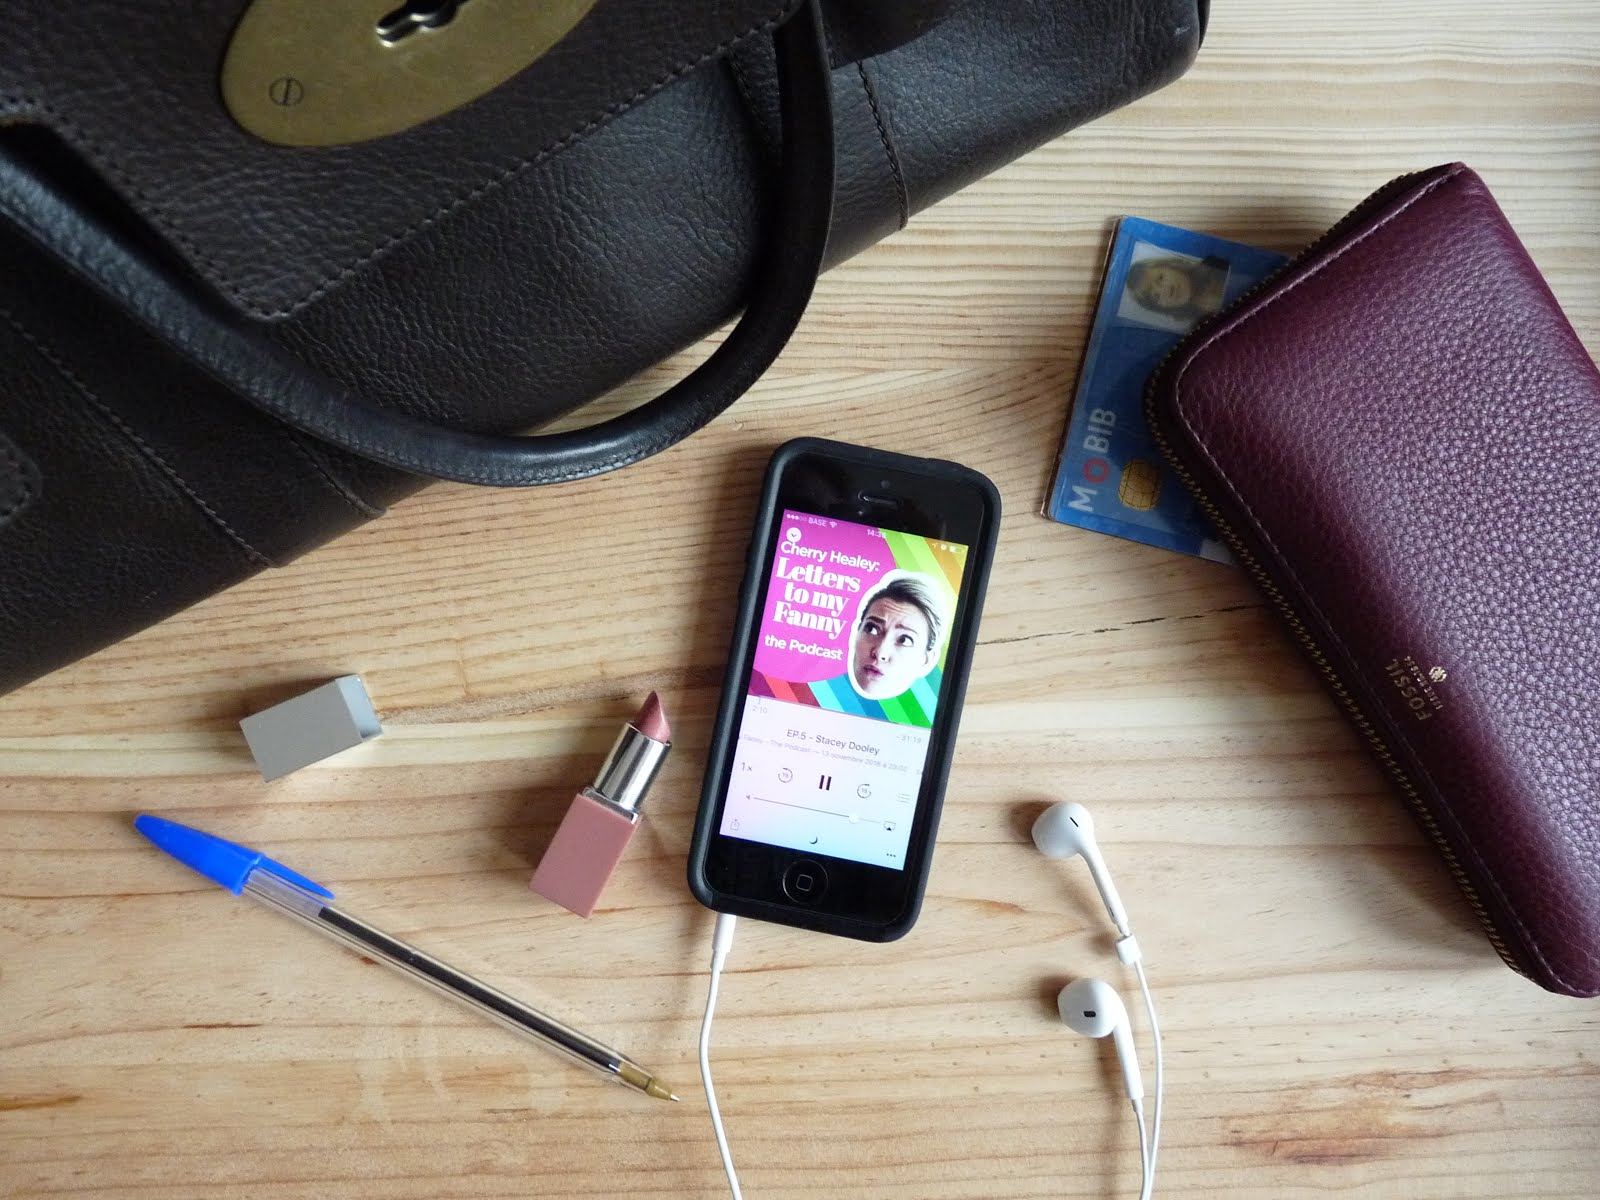 mulberry bayswater handbag, clinique nude pop lipstick, iphone 5, Cherry Healey's Letters to my fanny podcast, apple earphones, fossil purse, blue ink ball pen